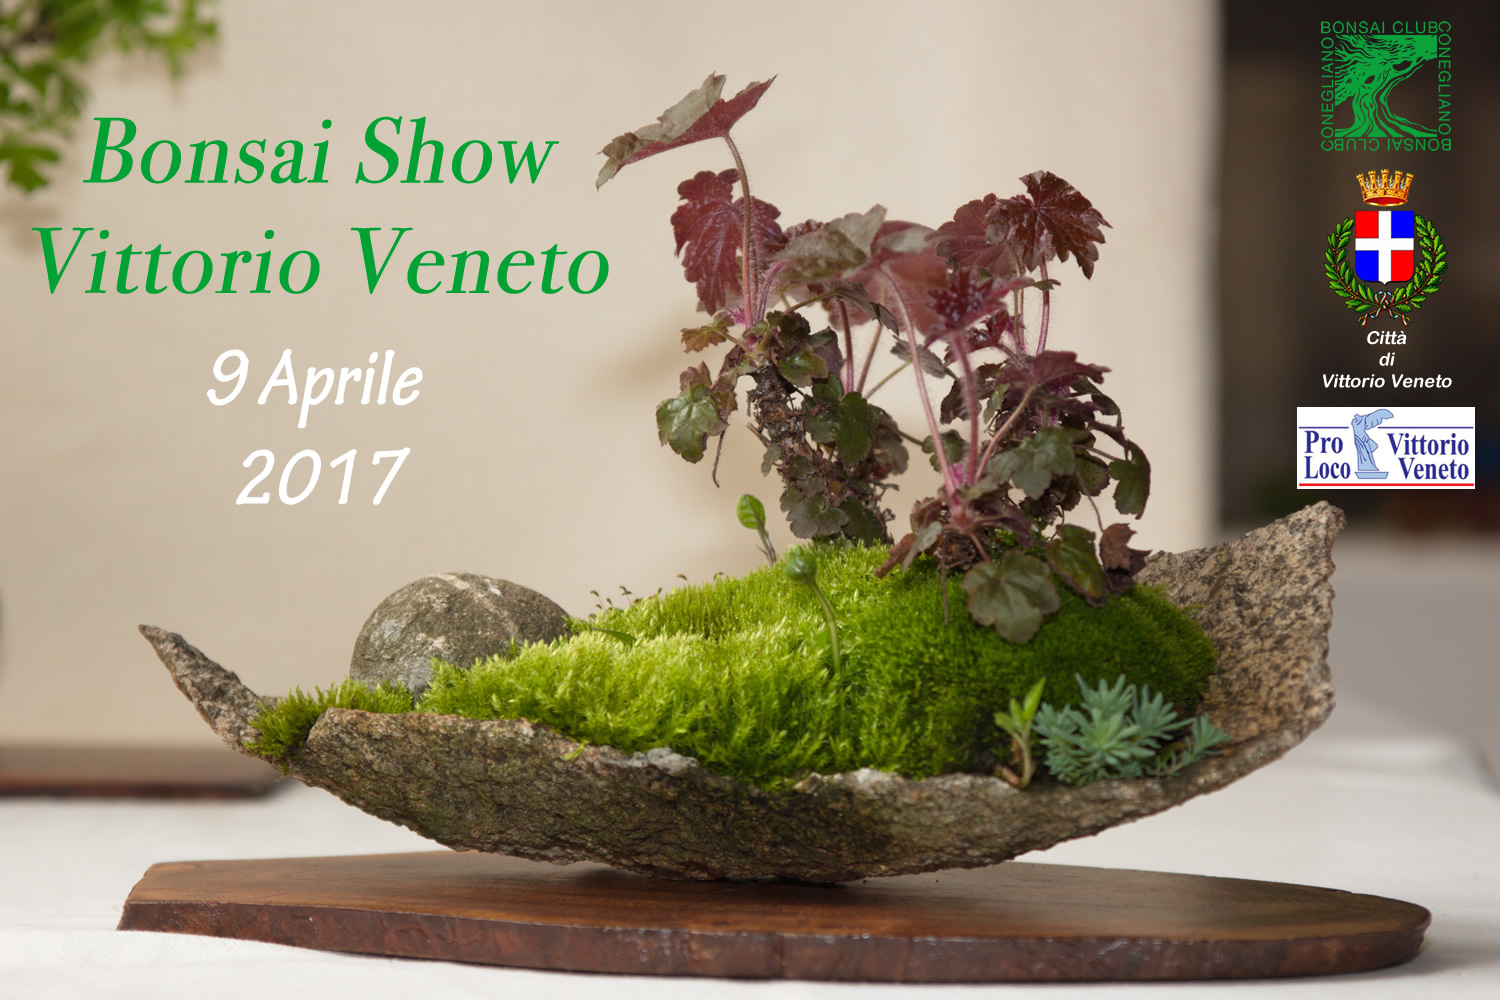 Bonsai Show a Vittorio Veneto 2017 - Bonsai Club Conegliano